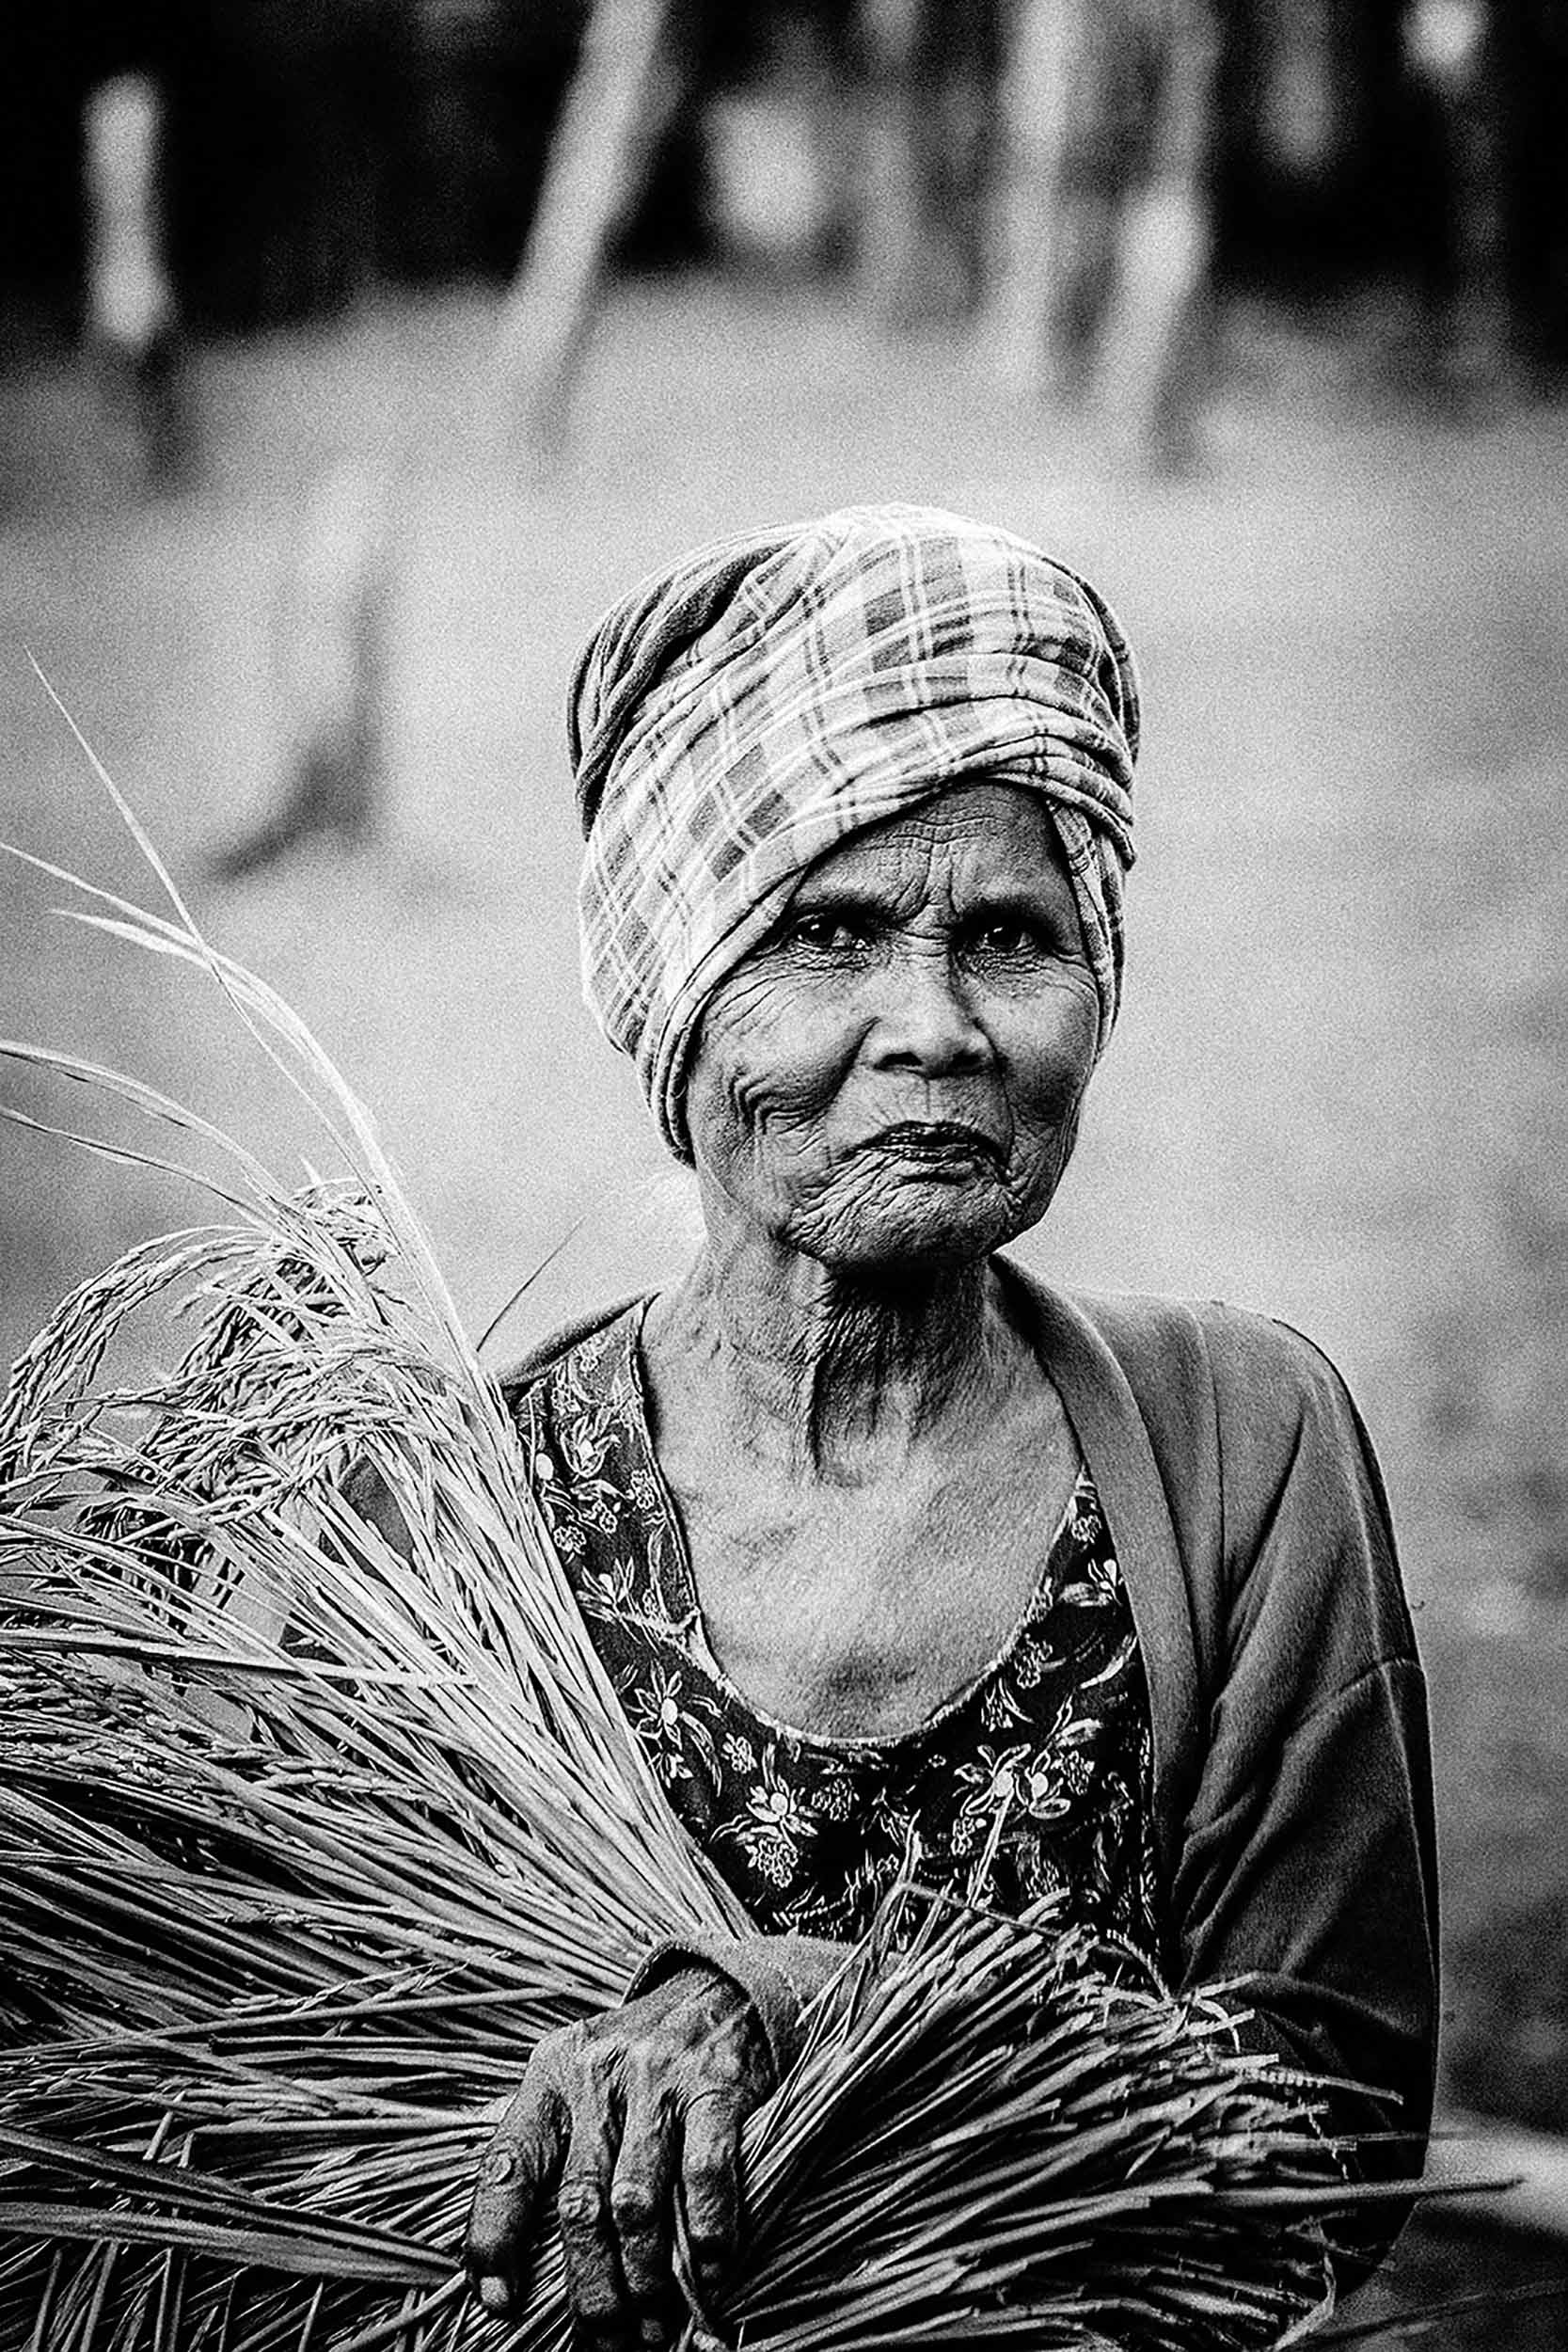 Rice harvesting Southern Laos